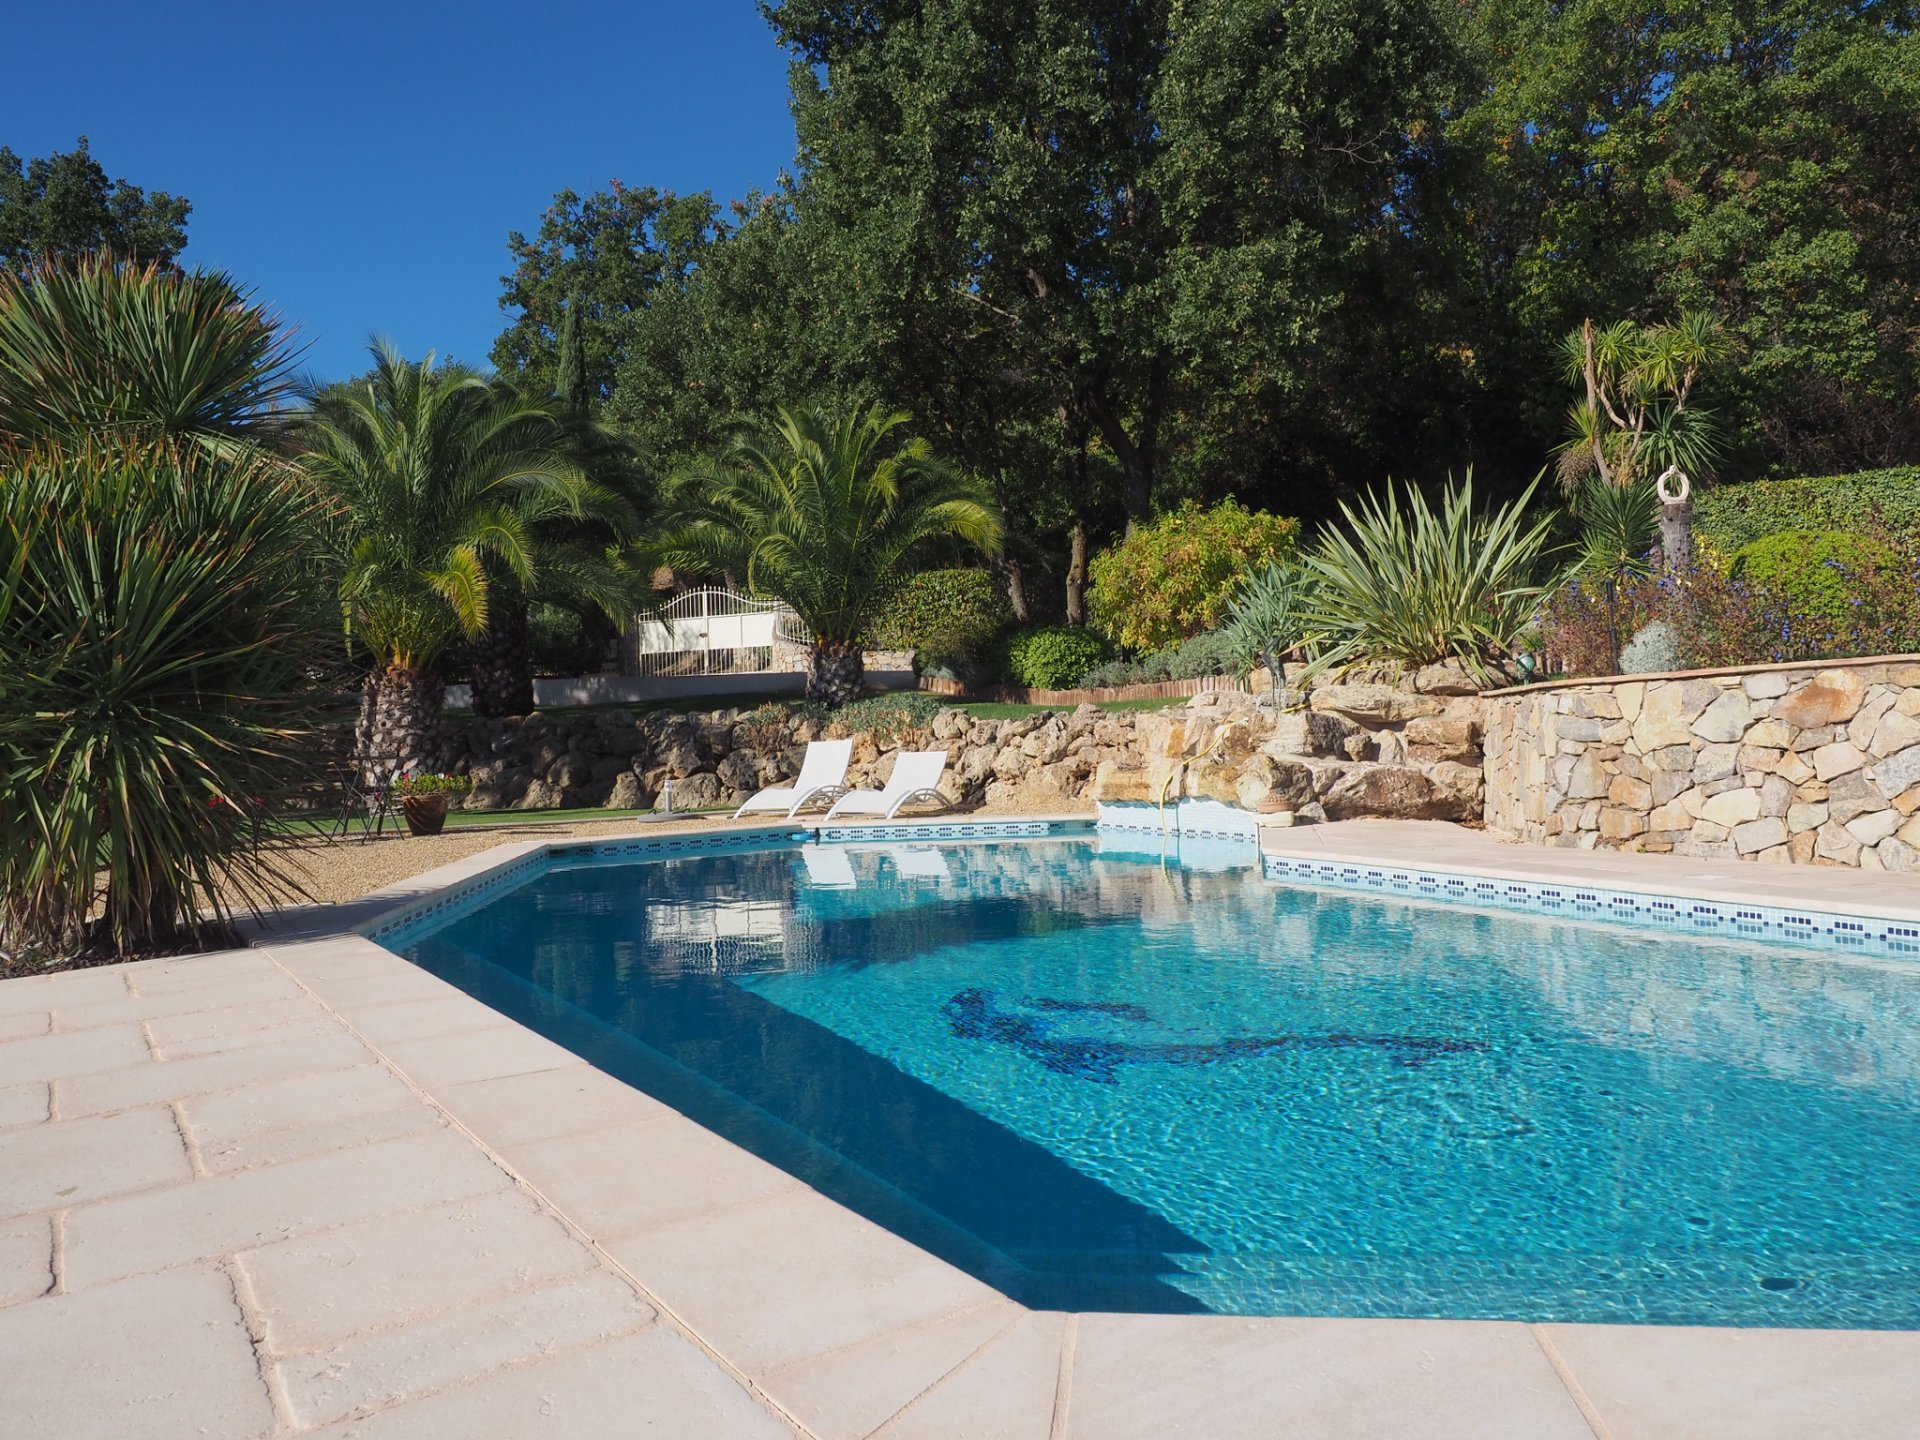 Quality villa with beautiful pool and view